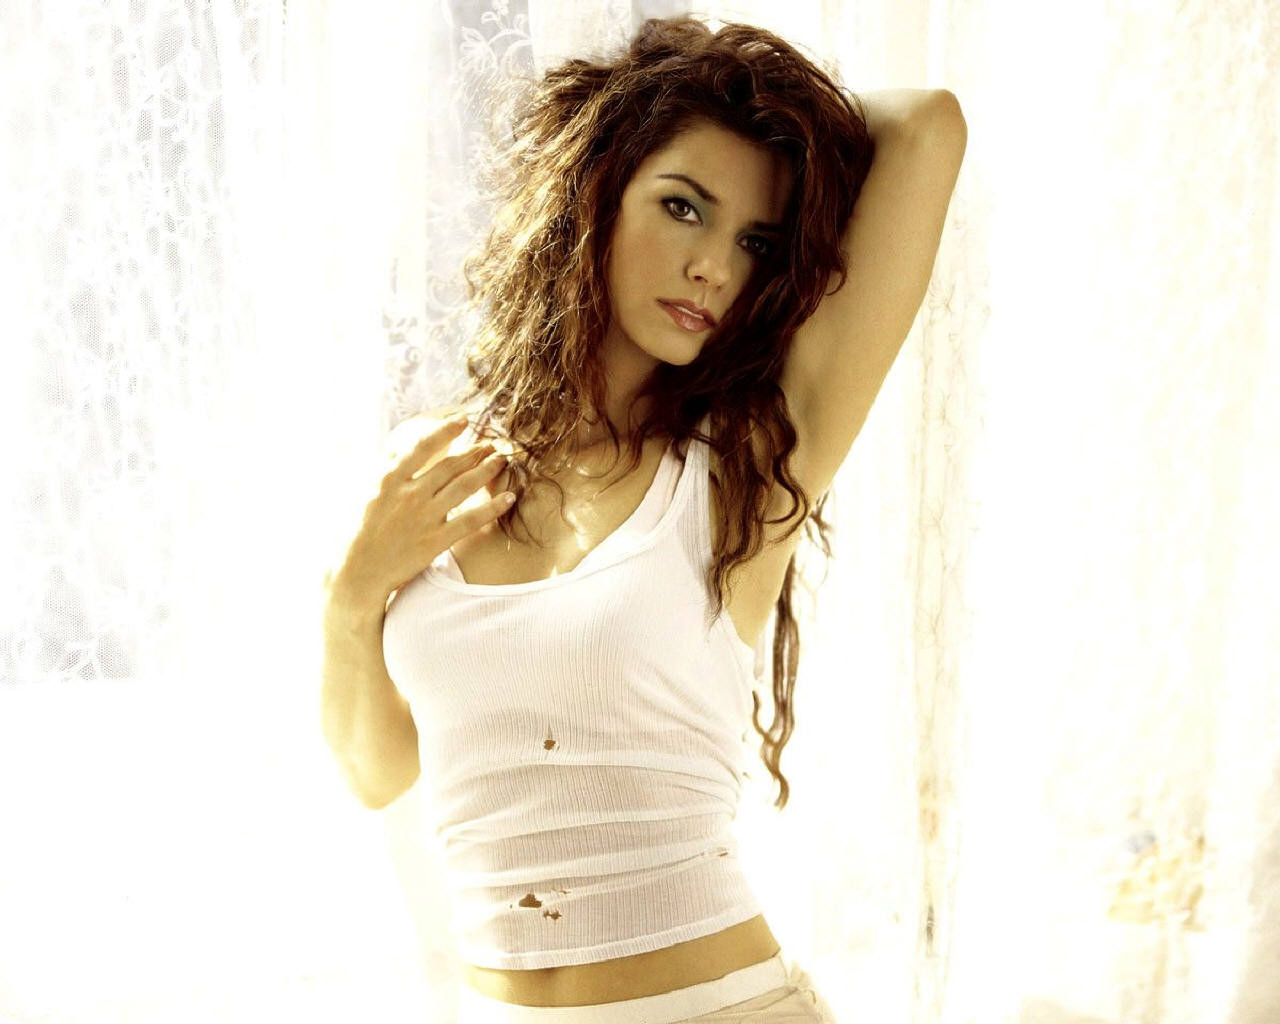 Shania Twain images Shania Twain HD wallpaper and 1280x1024